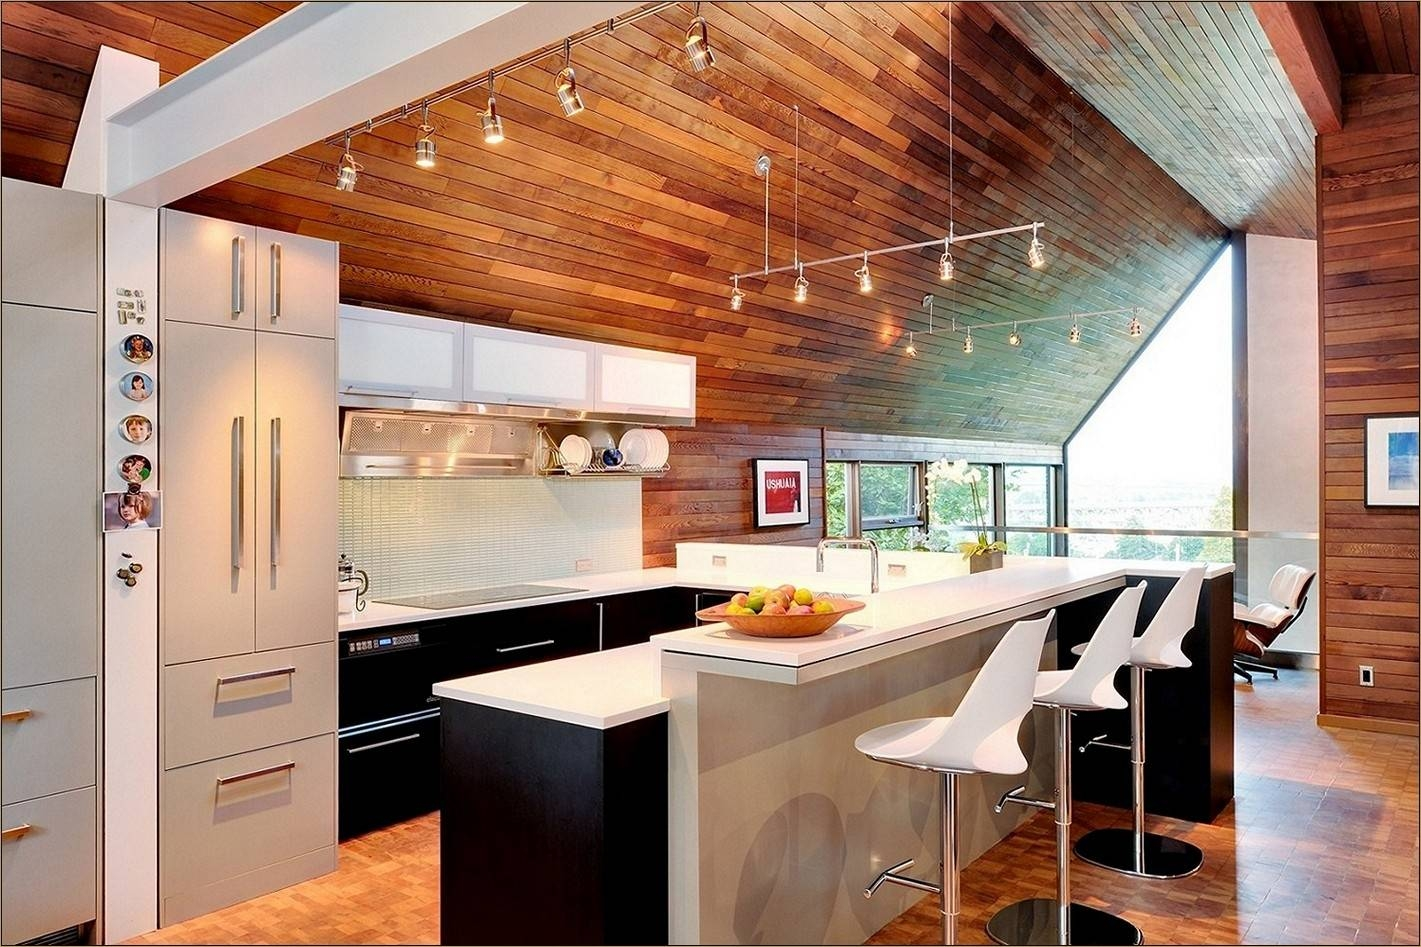 Interior: Mid Century Modern Kitchen Design With Wood Ceiling And Within Sloped Ceiling Track Lighting (View 3 of 15)